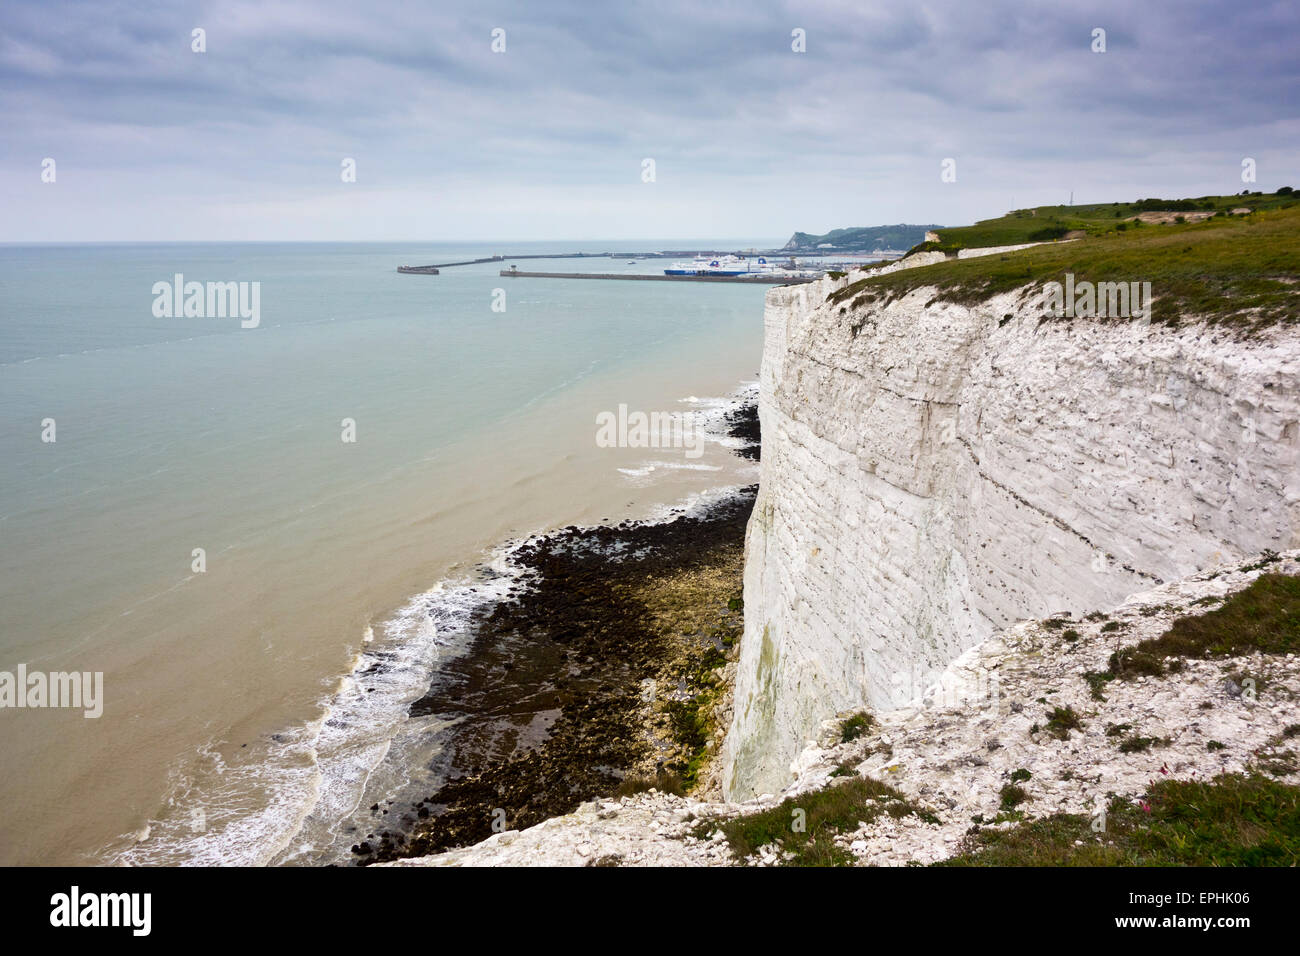 white cliffs Dover South Foreland Coast path footpath coastal - Stock Image